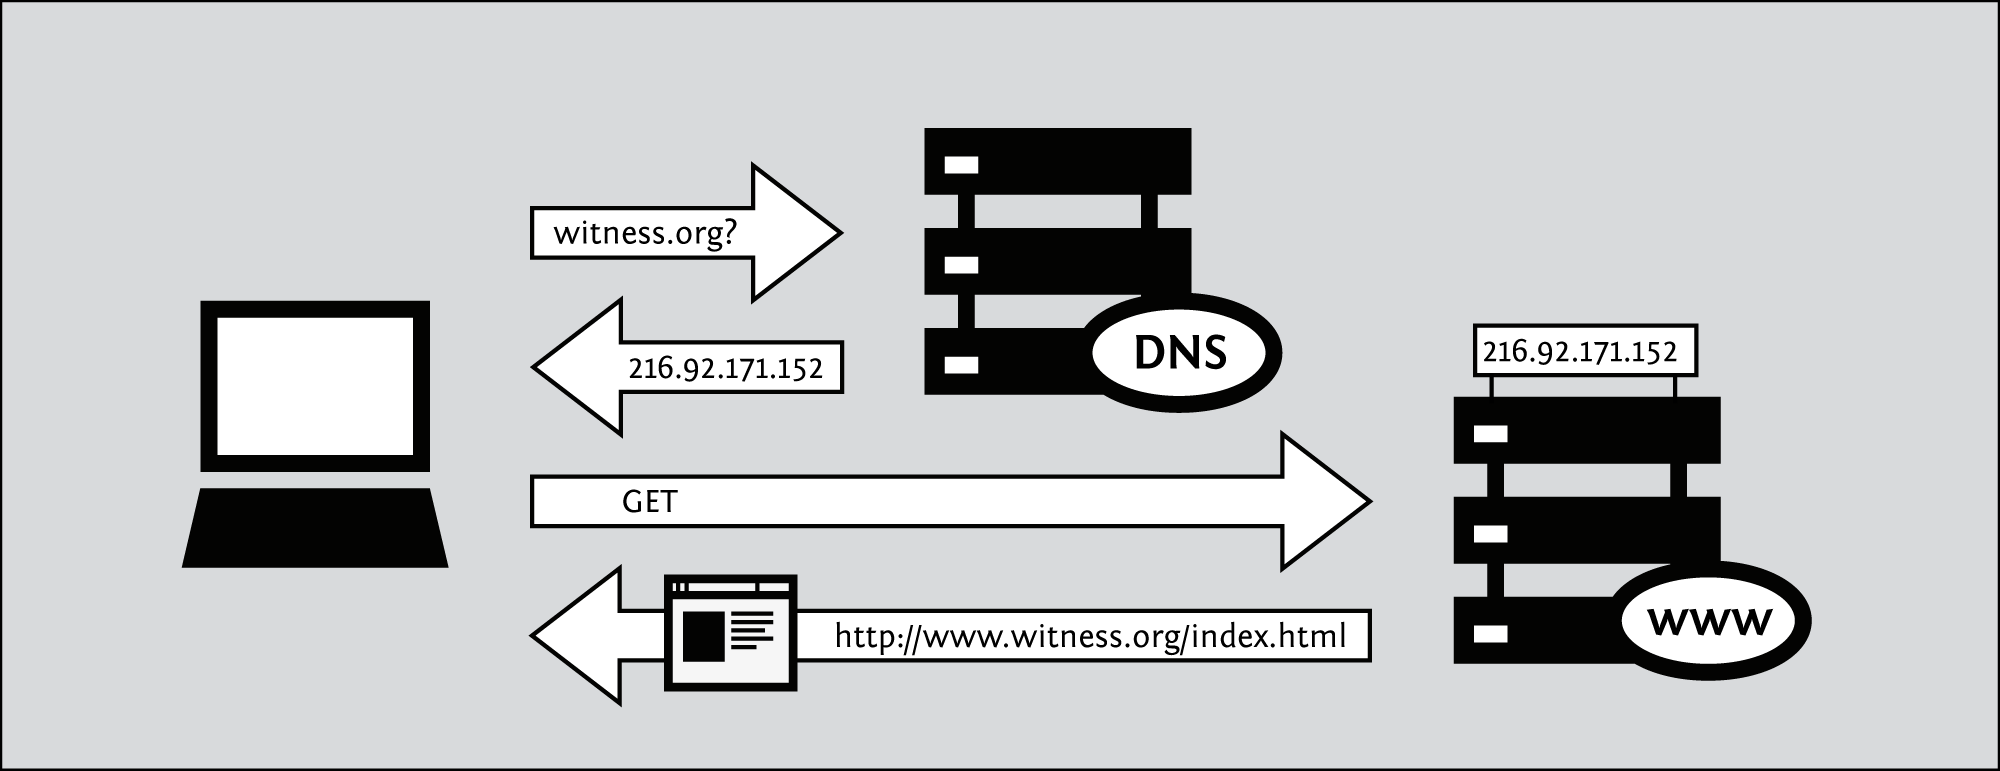 How To Bypass Internet Censorship Diagram Of Web Browser Requesting A Page From Server If The Dns Is Configured Block Access It Consults Blacklist Banned Domain Names When Requests Ip Address For One These